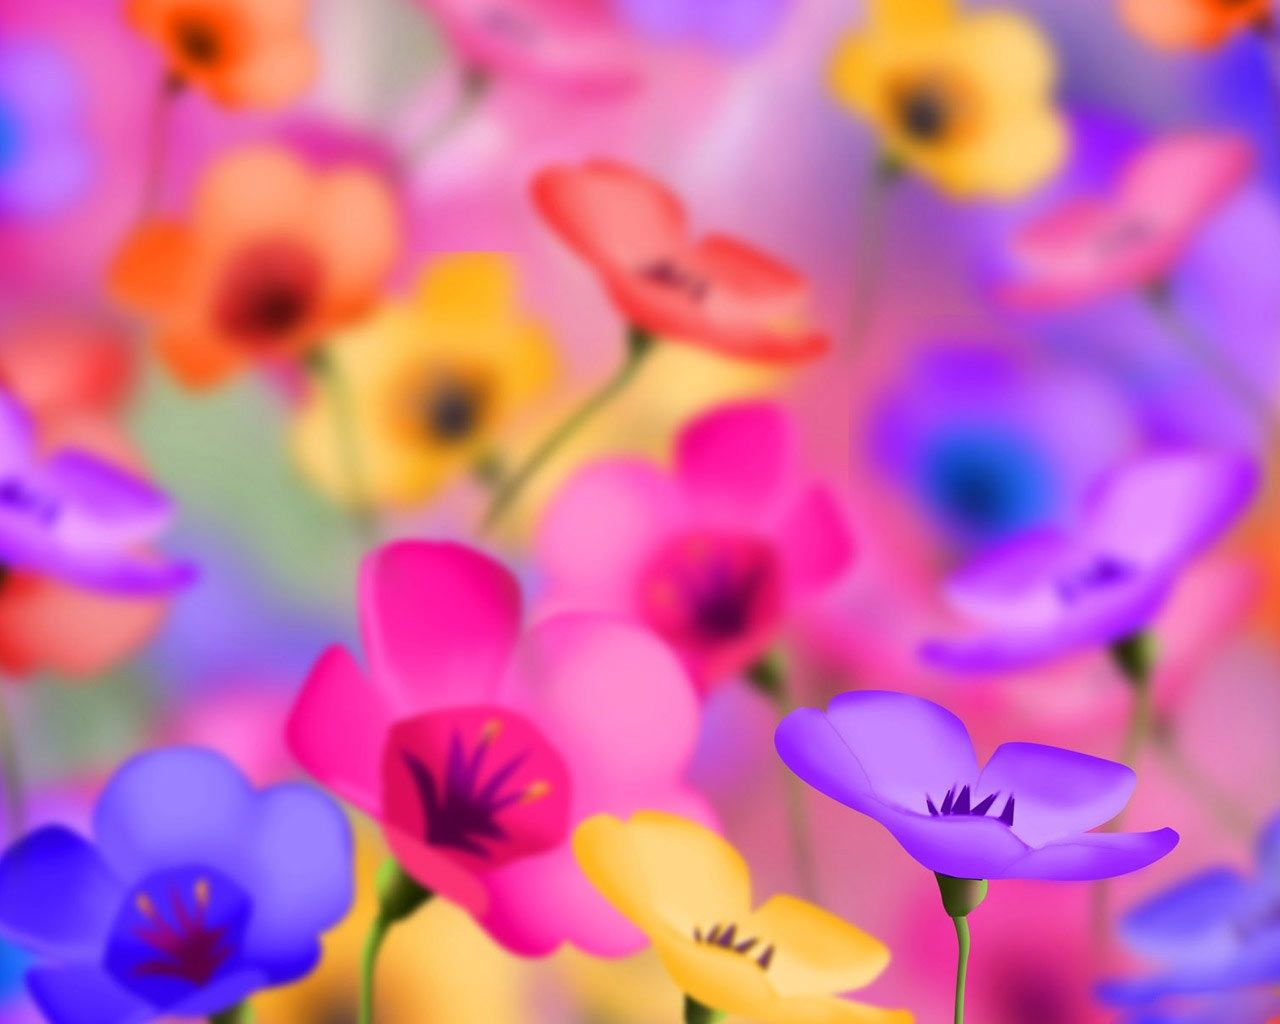 Spring Flowers Wallpaper Hd | Natures Wallpapers | Pinterest ...